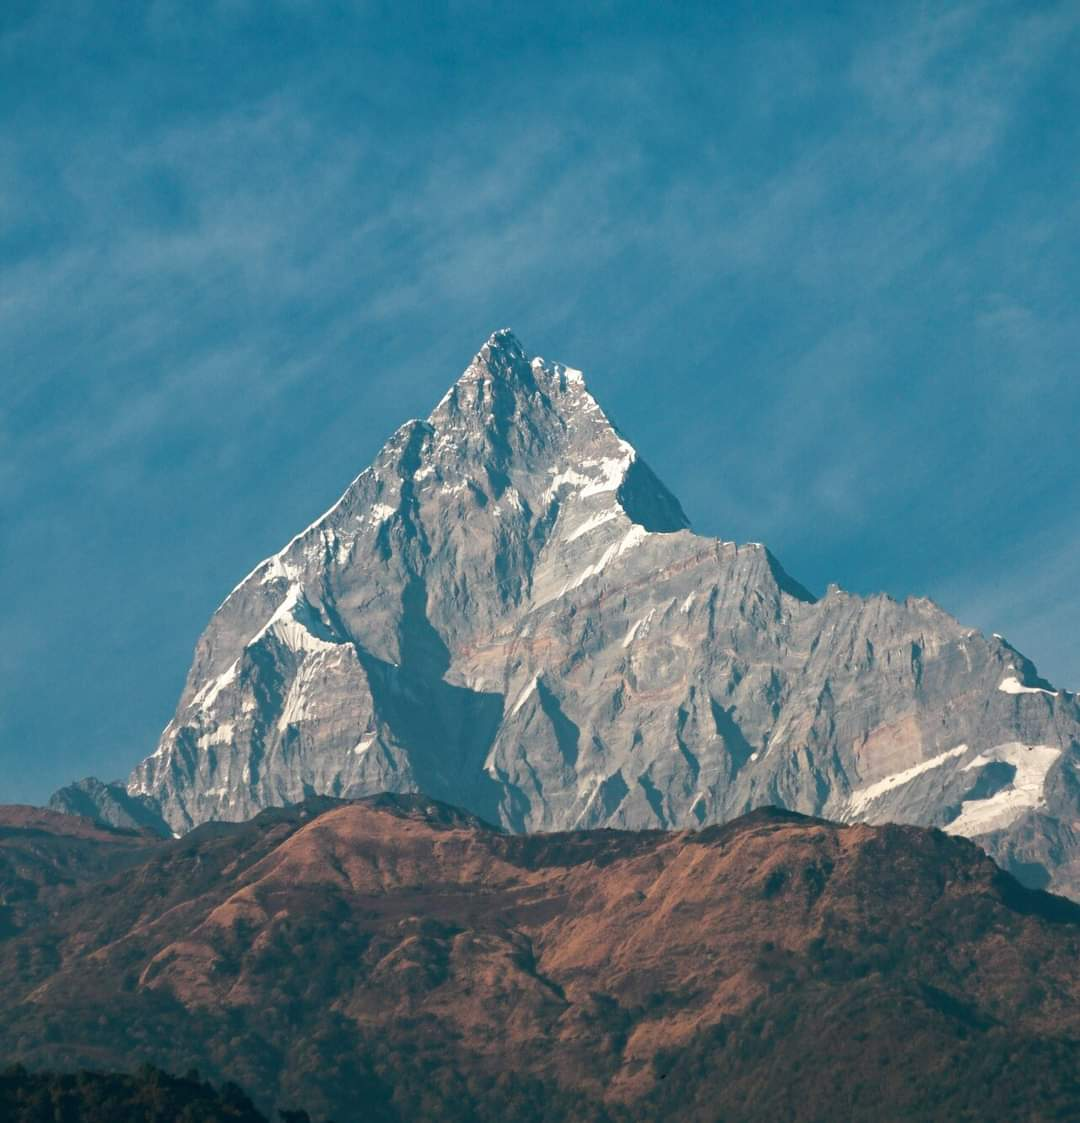 The #Machhapuchhre mountain in #Nepal,whose glory is marked by the snow formed on it every year. But,#climatechange has turned this natural beauty into just a #Snowless rock This hilly region is experiencing a yearly rise in Temp. by 0.4°C @GretaThunberg @LicypriyaK @vanessa_vash